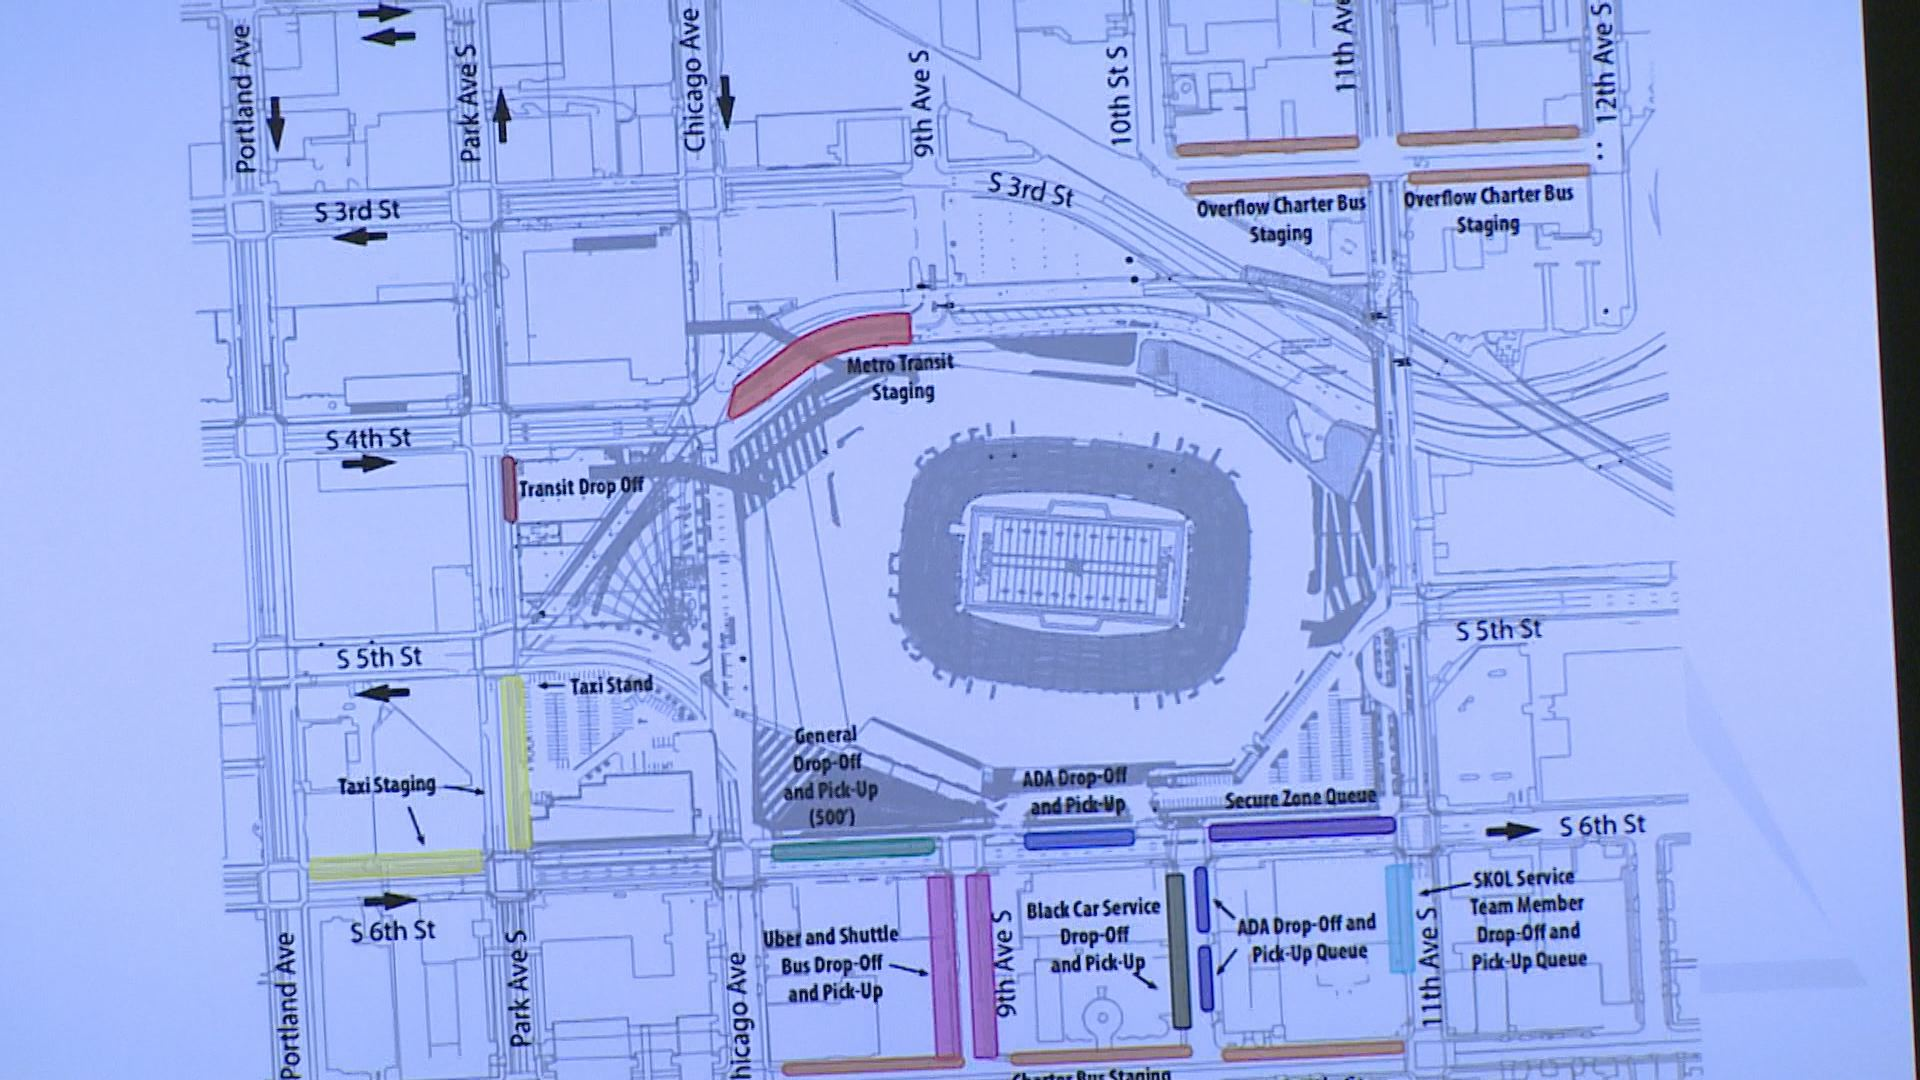 Exterior: What You Need To Know To Get To U.S. Bank Stadium